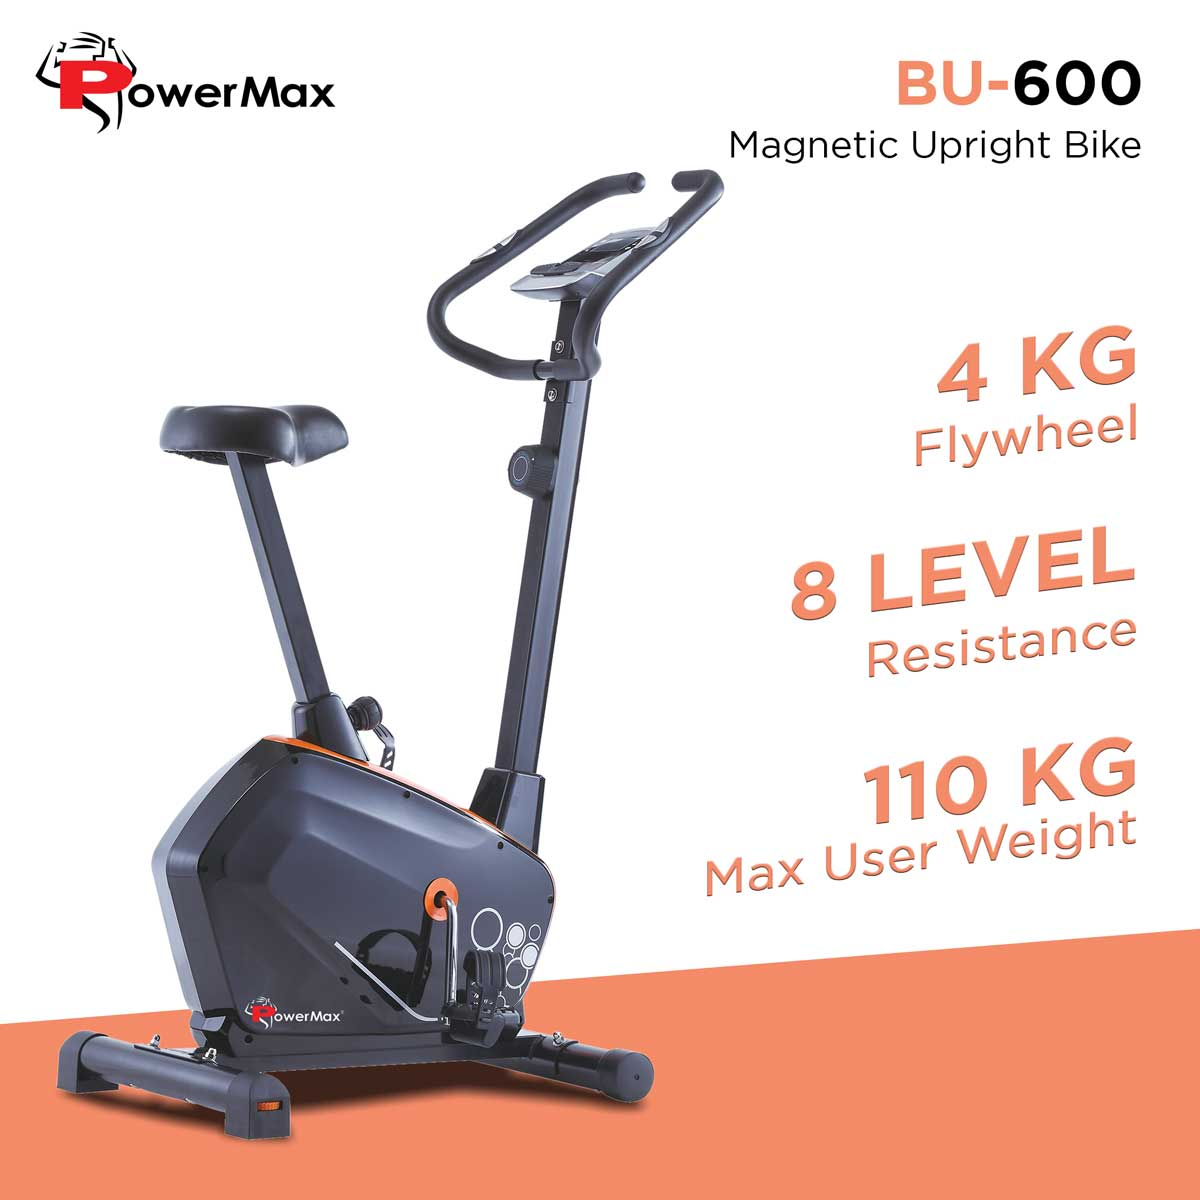 BU-600 Magnetic Upright Bike